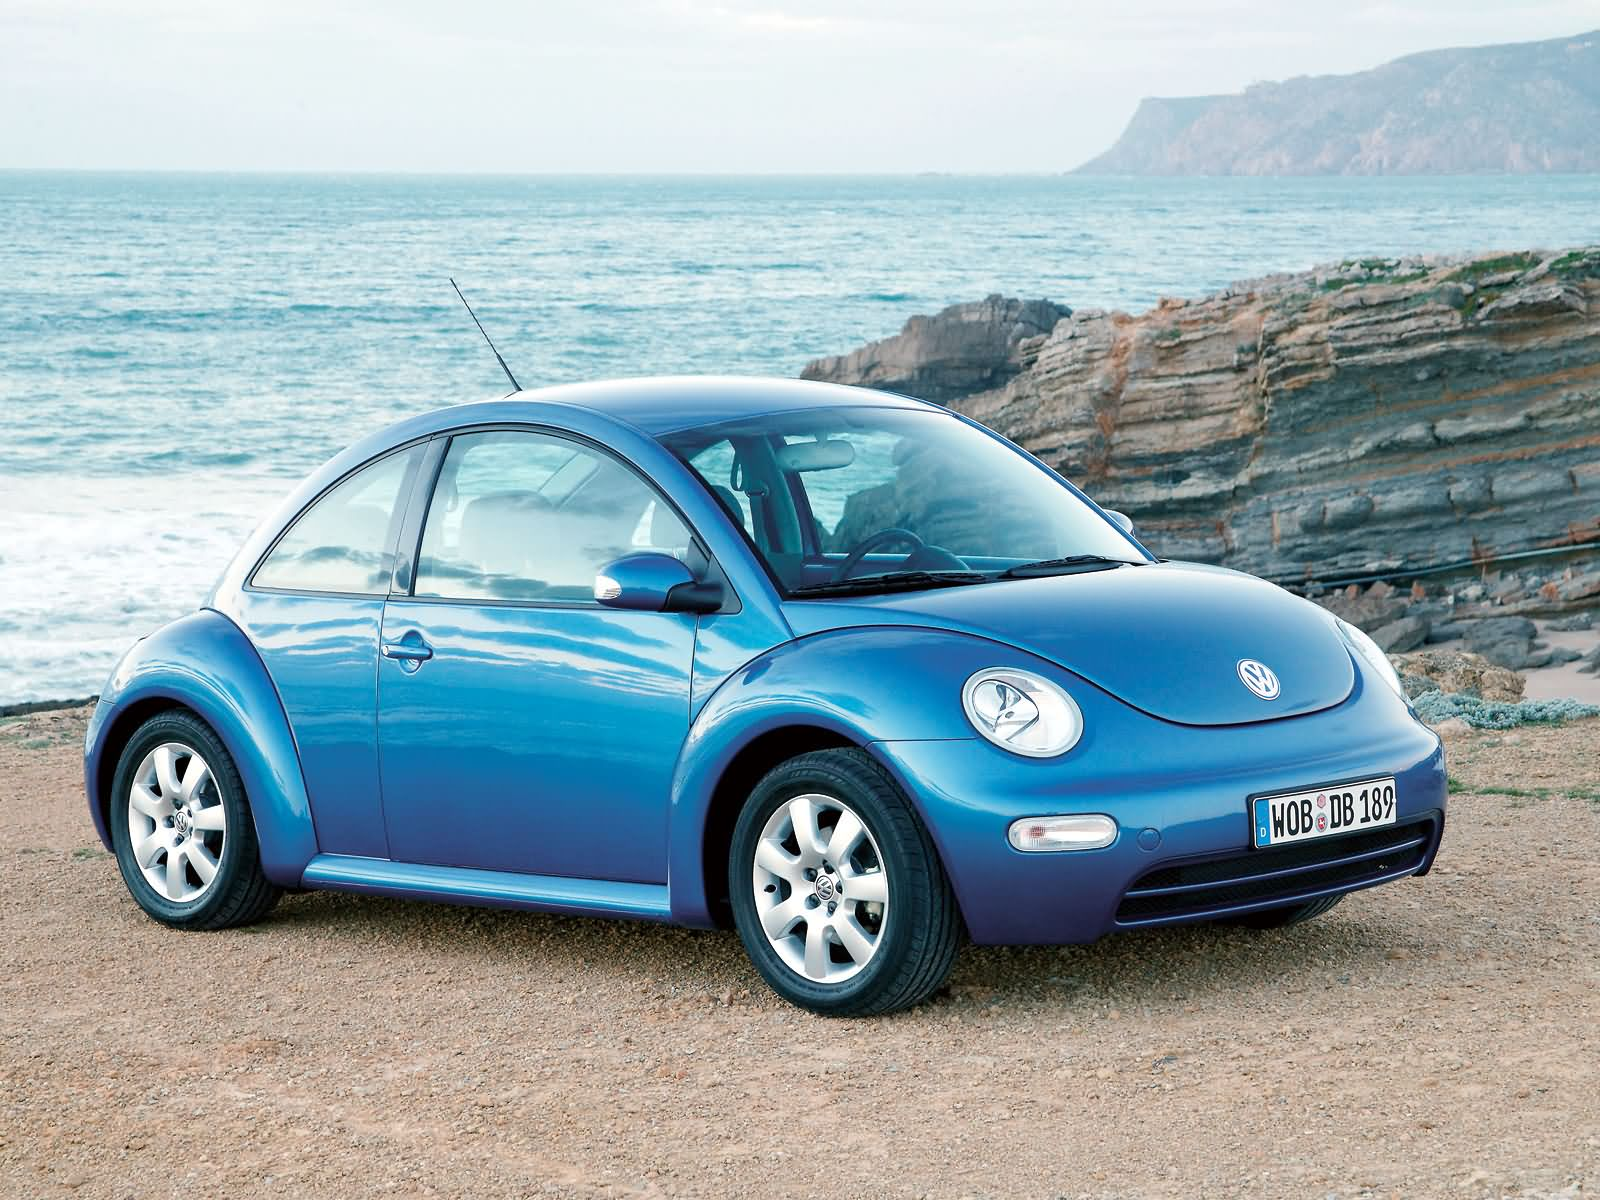 volkswagen new beetle picture 17950 volkswagen photo gallery. Black Bedroom Furniture Sets. Home Design Ideas